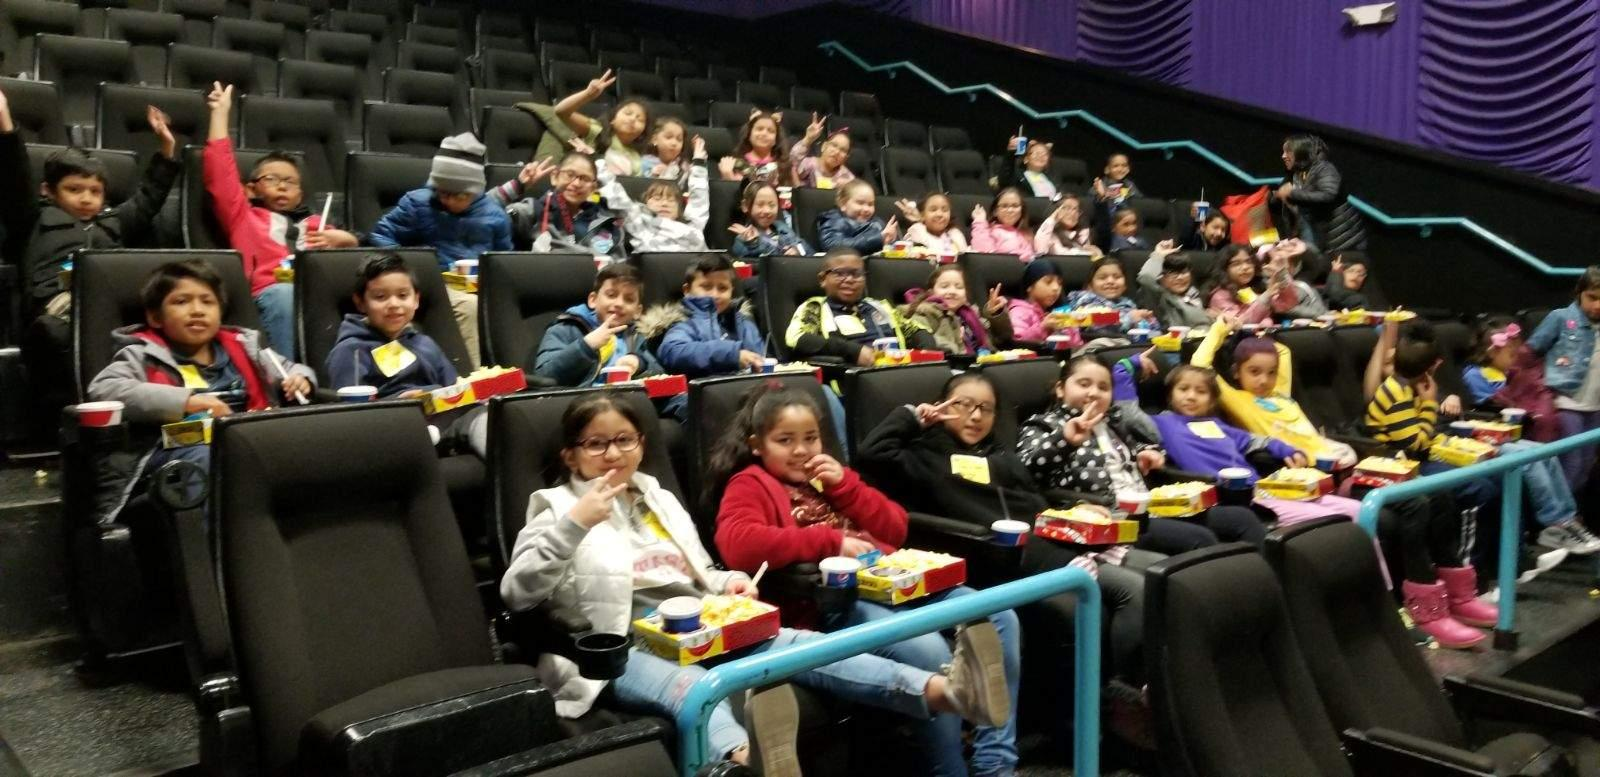 kids waiting for movie to start